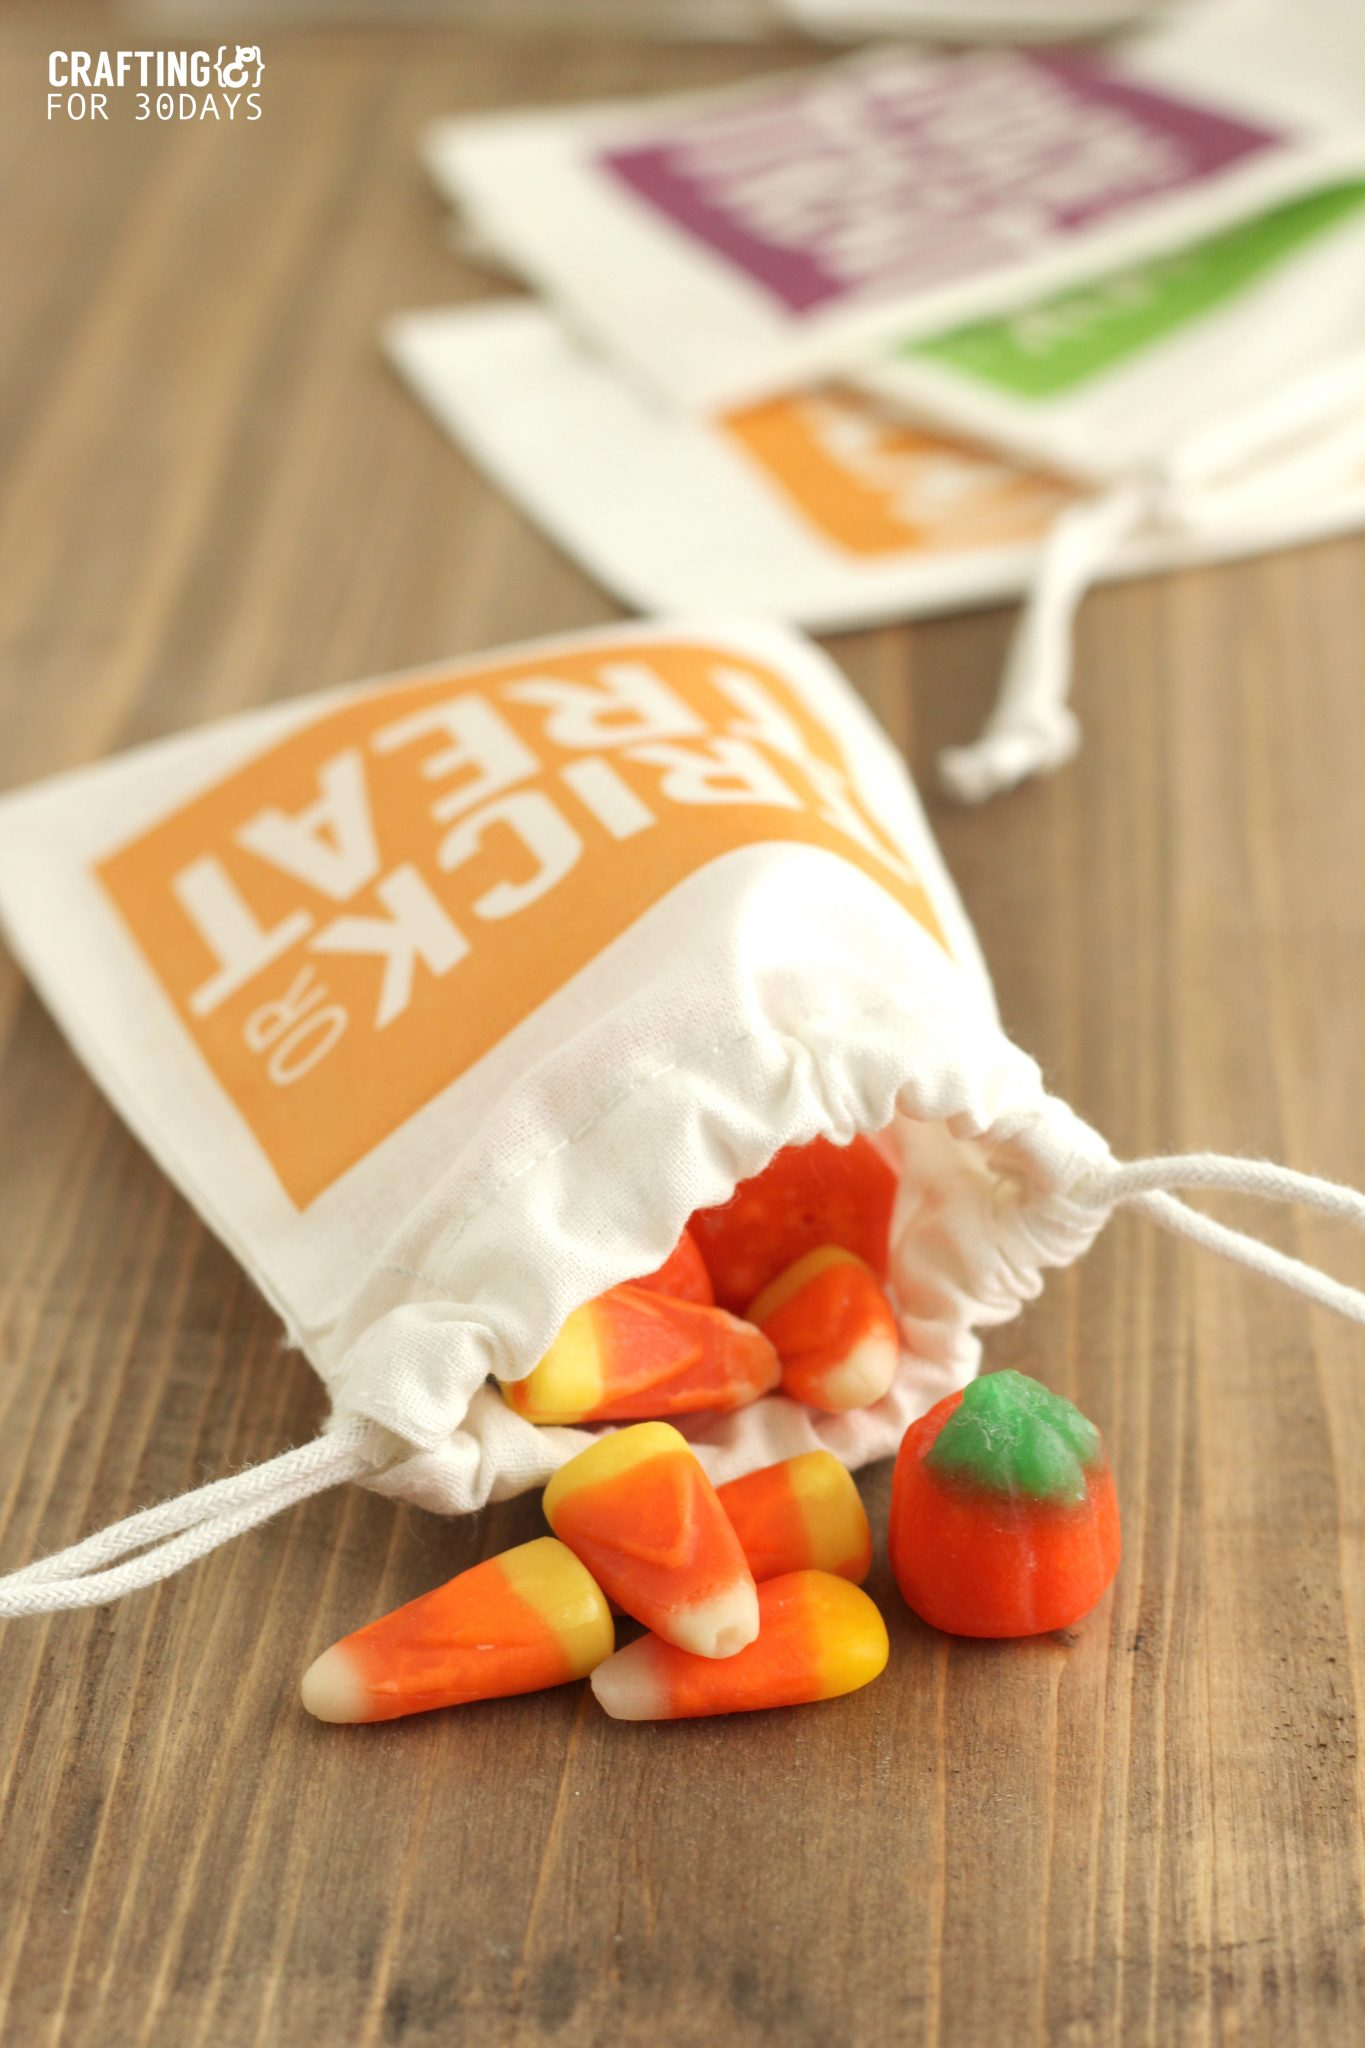 Want to host a Halloween theme party but aren't sure where to start? Browse our creative Halloween party themes—for kids and adults—to get inspired by decorating ideas and delicious menus and recipes. Find the perfect theme with our indoor and outdoor halloween party decorations, party props, monster party ideas, and circus party ideas that will make you the ultimate Halloween party planner.